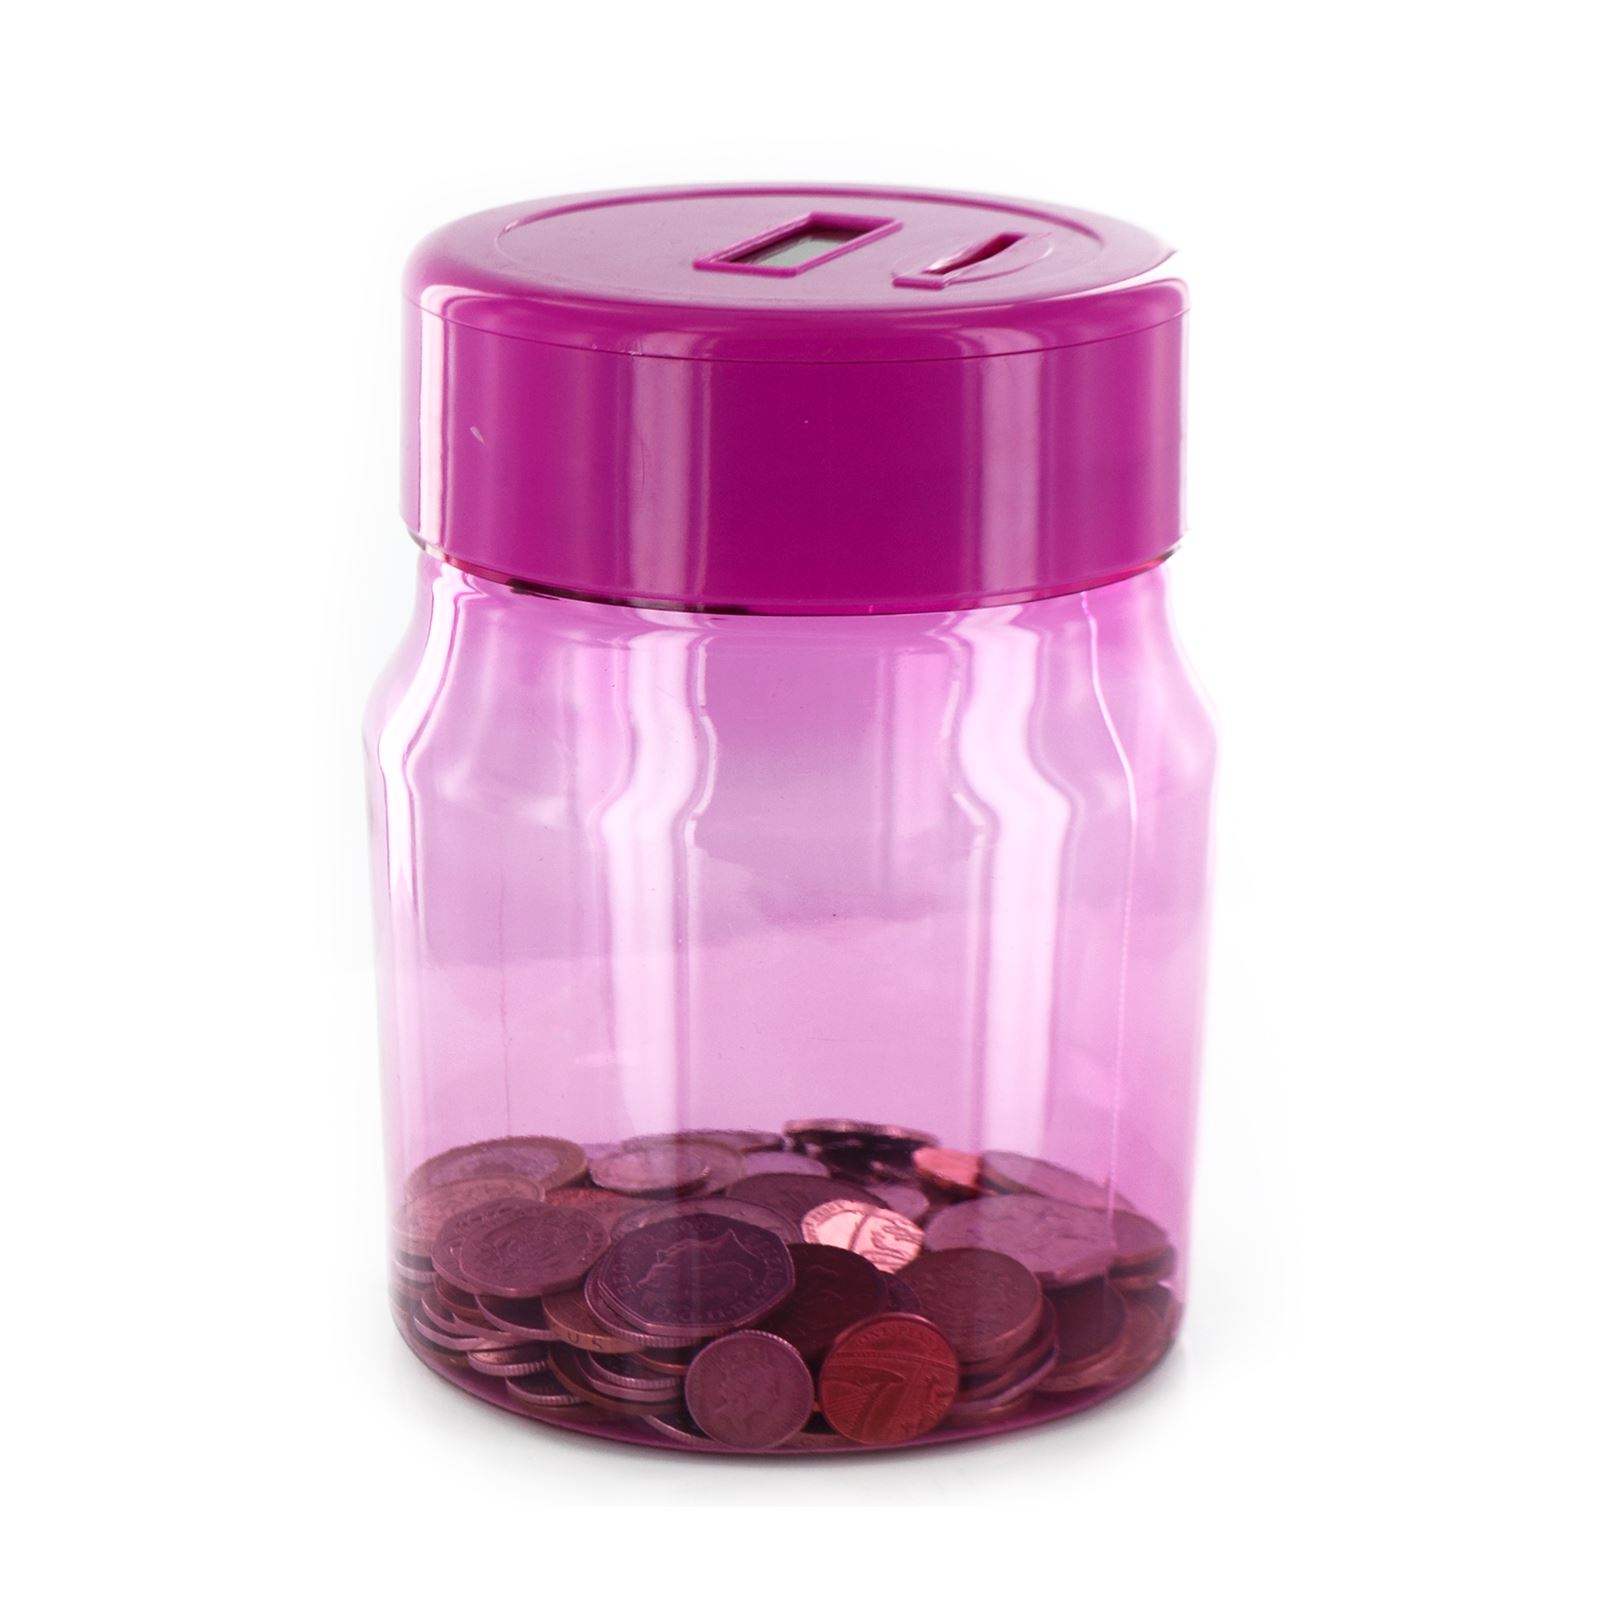 New Electronic Digital Coin Counting Savings Money Bank